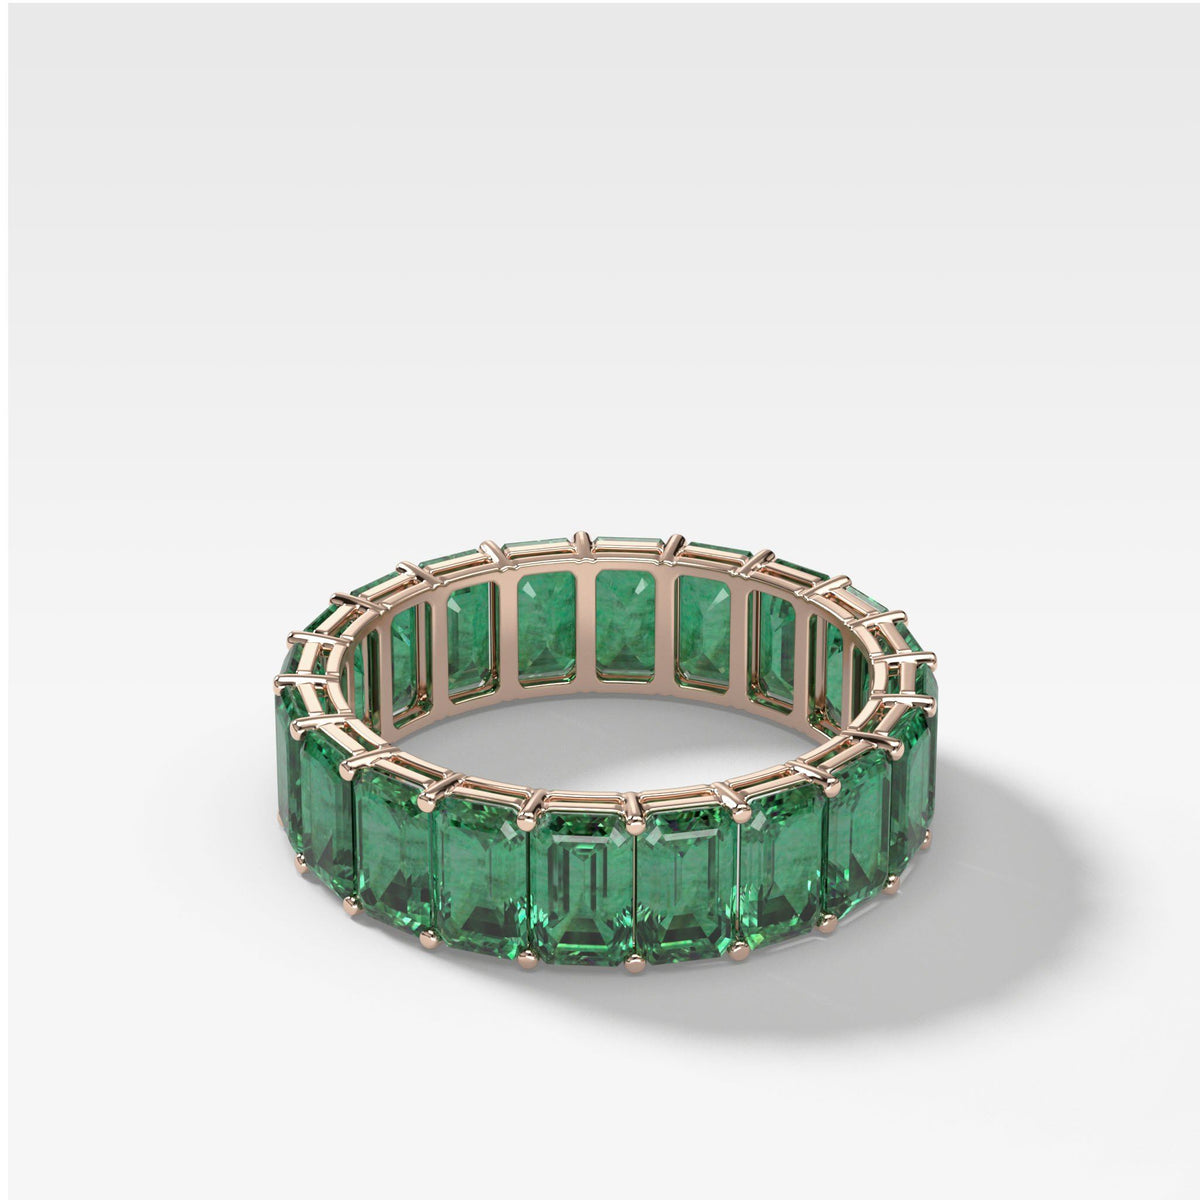 Green Emerald Emerald Cut Eternity band in Rose Gold by Good Stone